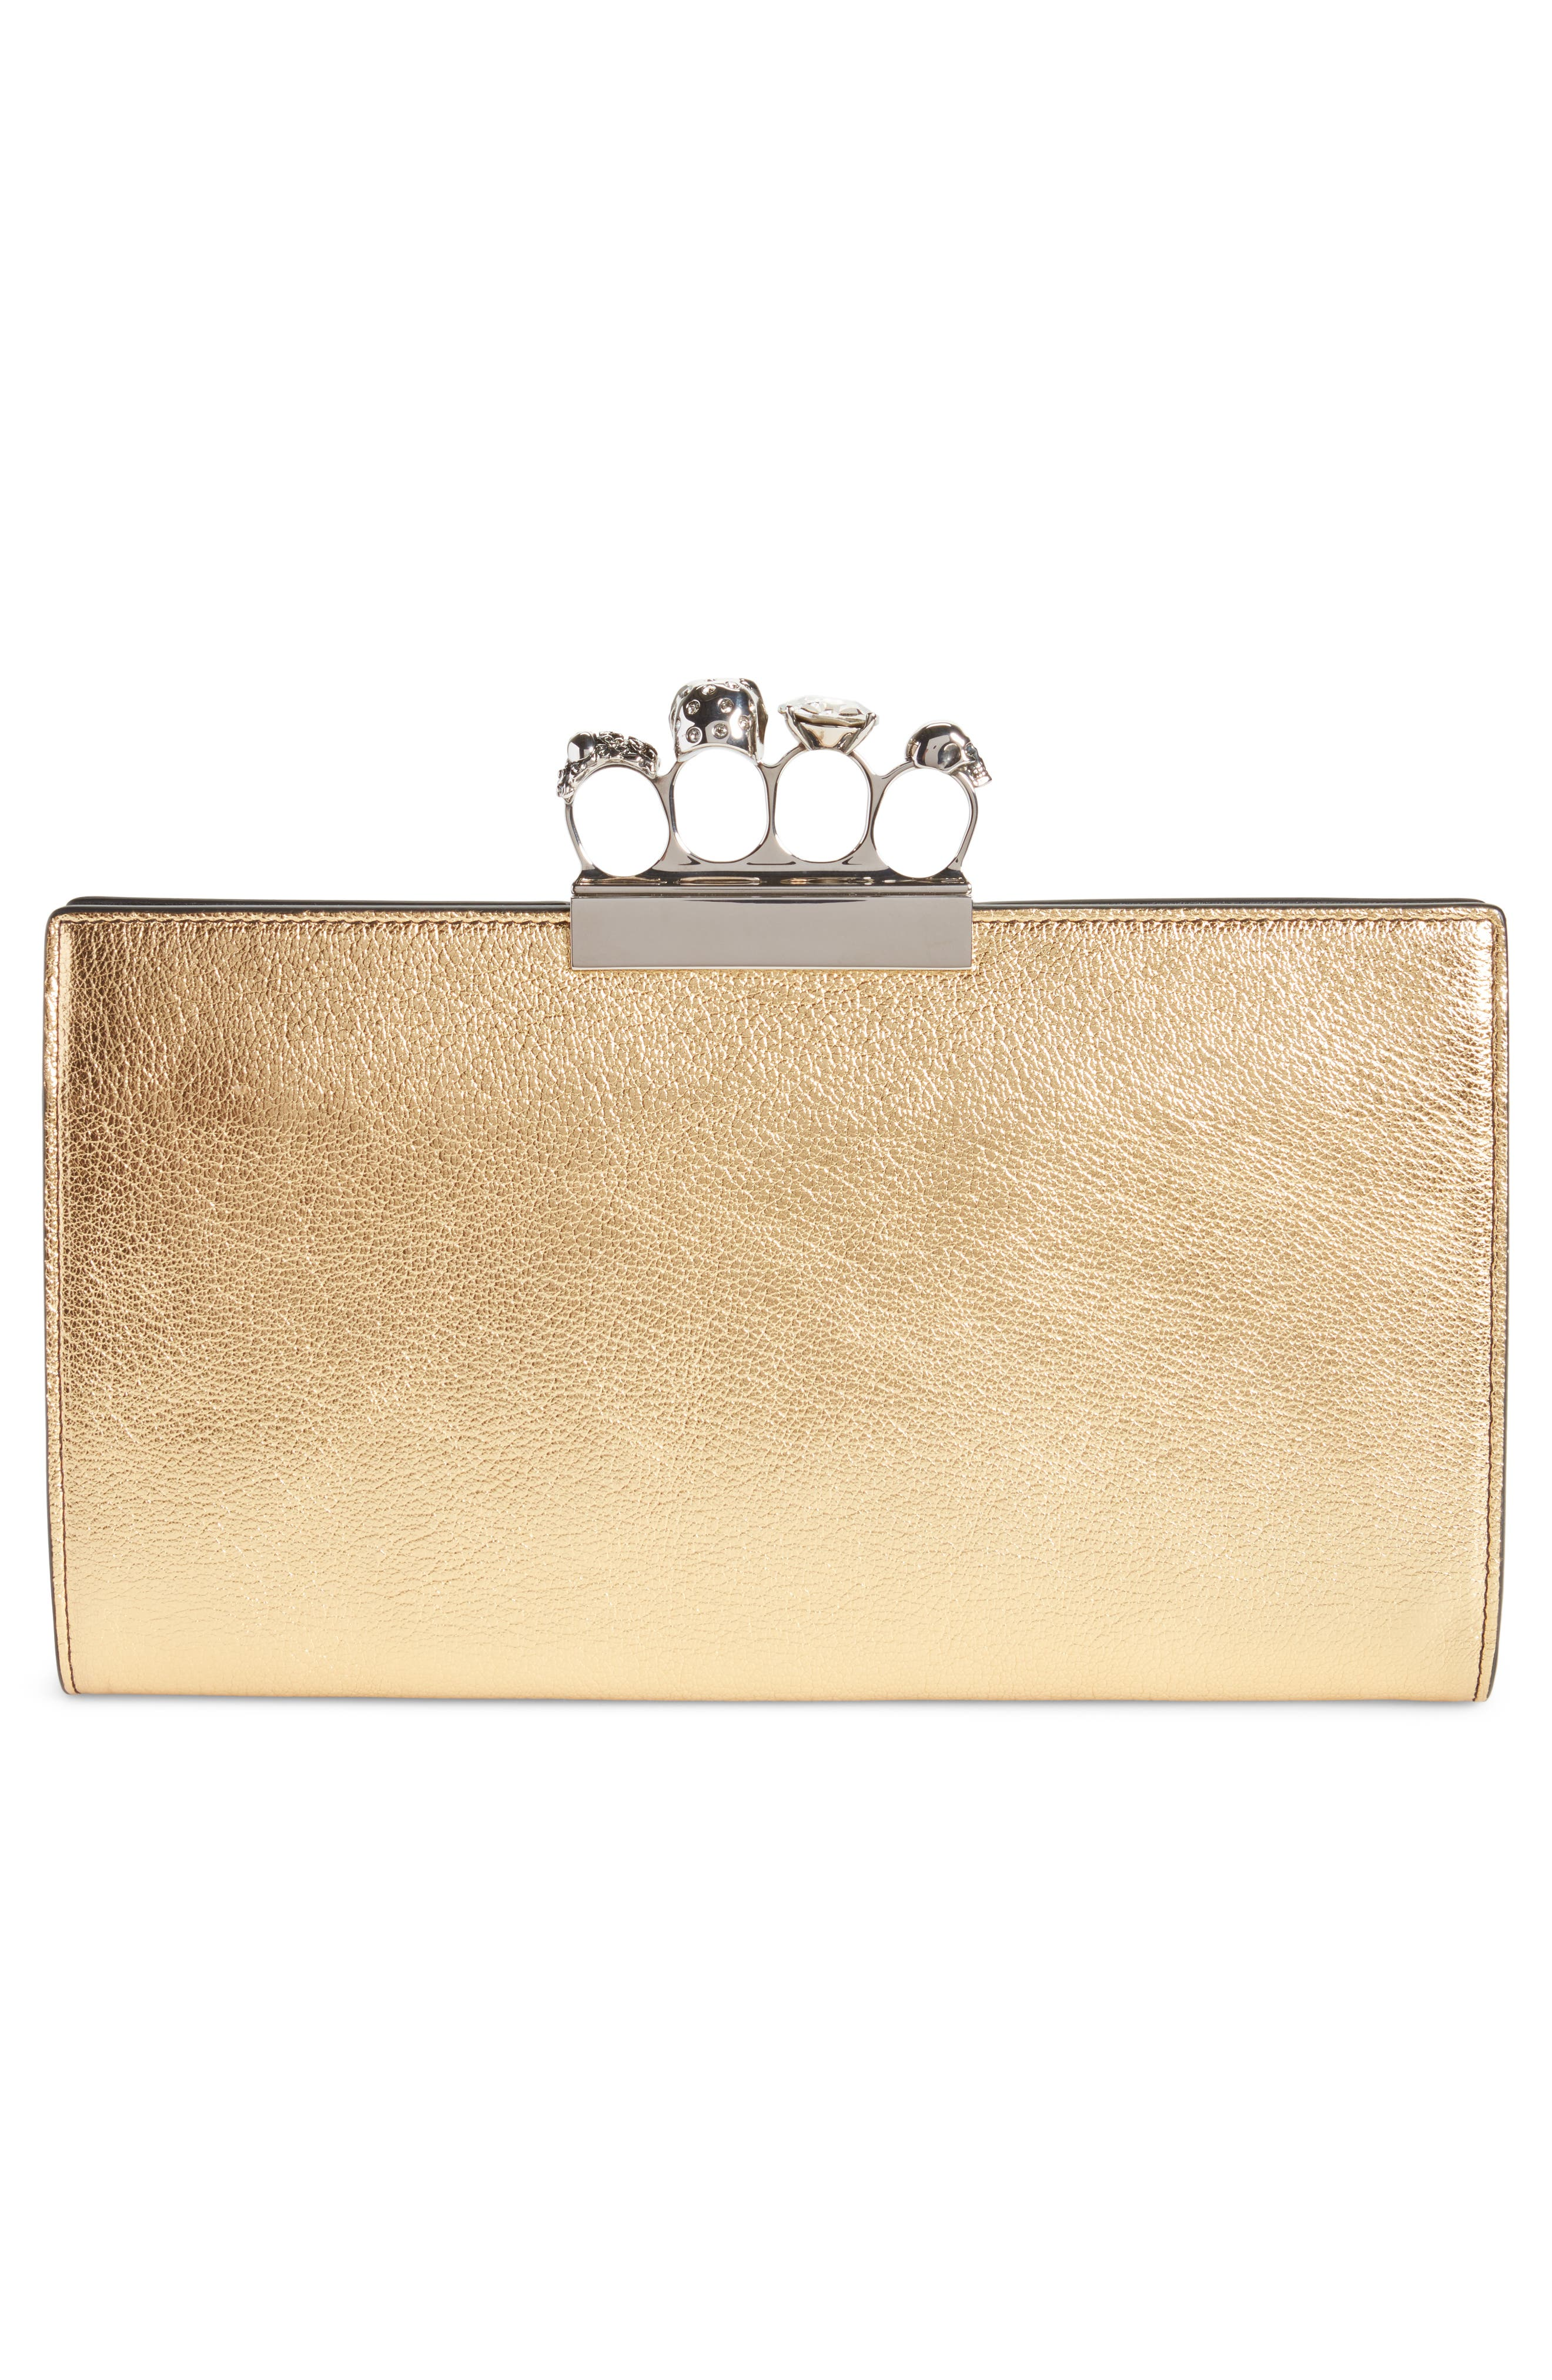 Knuckle Clasp Metallic Leather Clutch,                             Alternate thumbnail 3, color,                             710